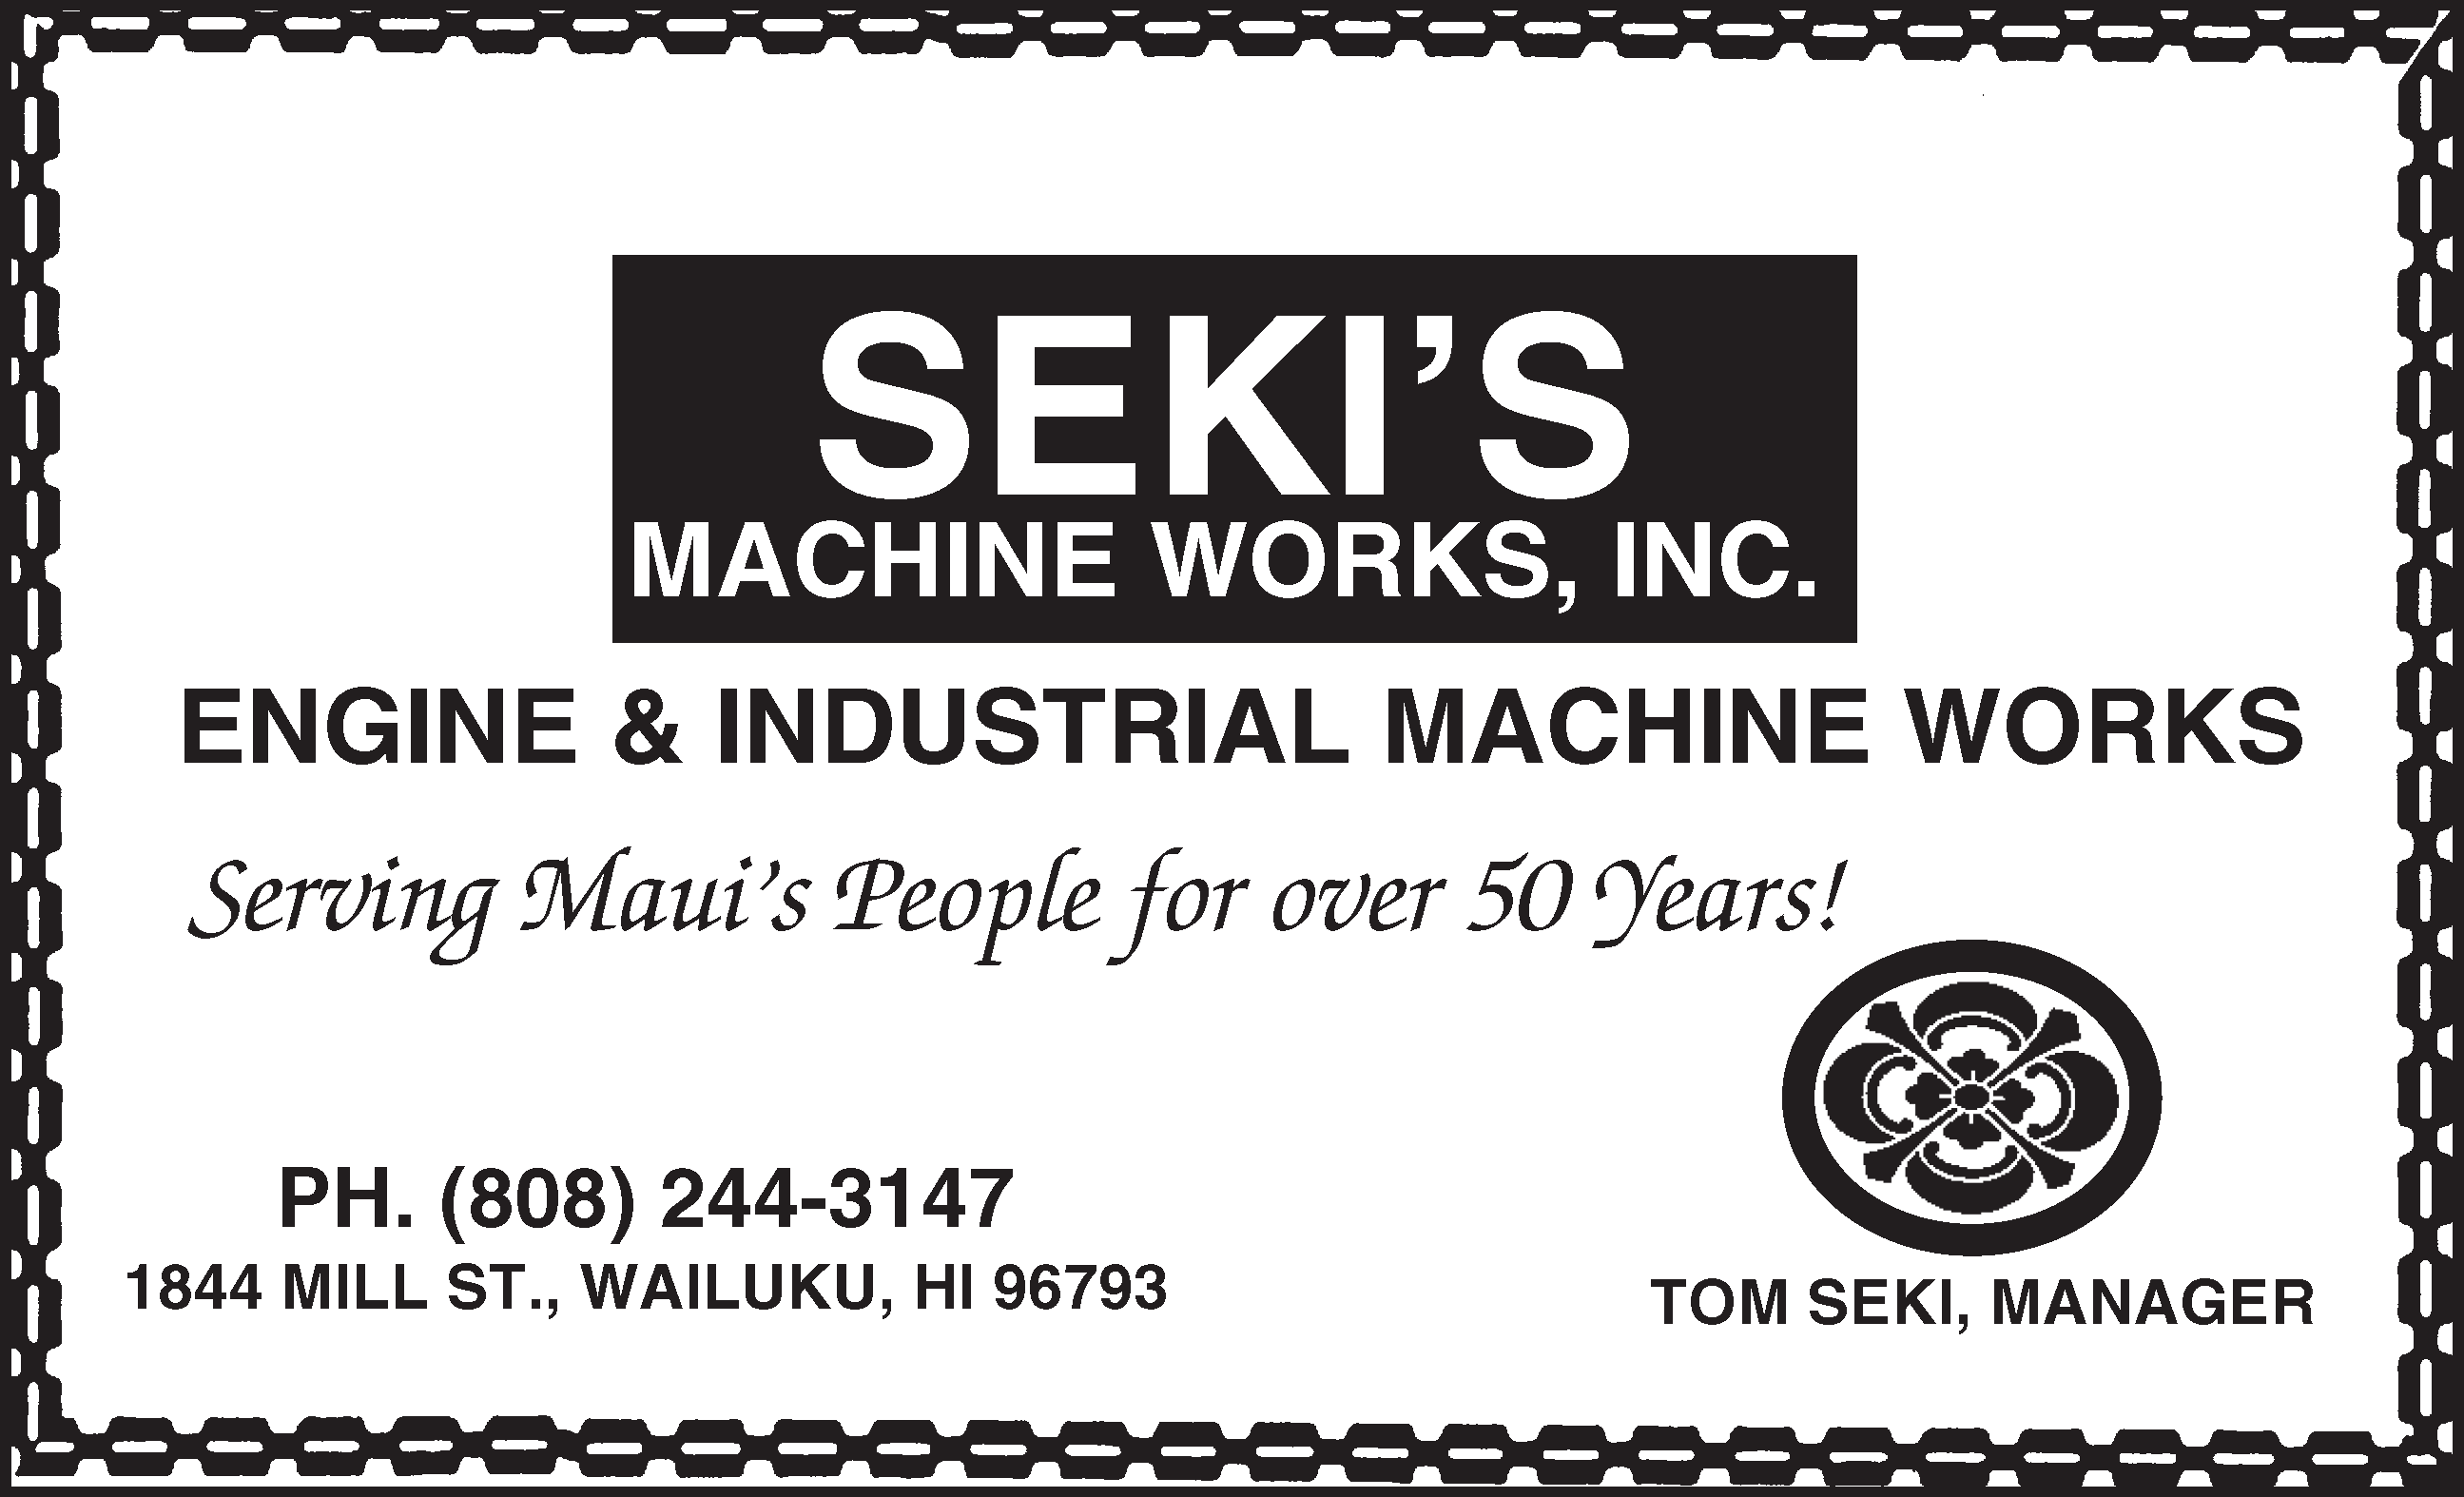 Seki's Machine Works Inc. serving maui's people for over 50 years